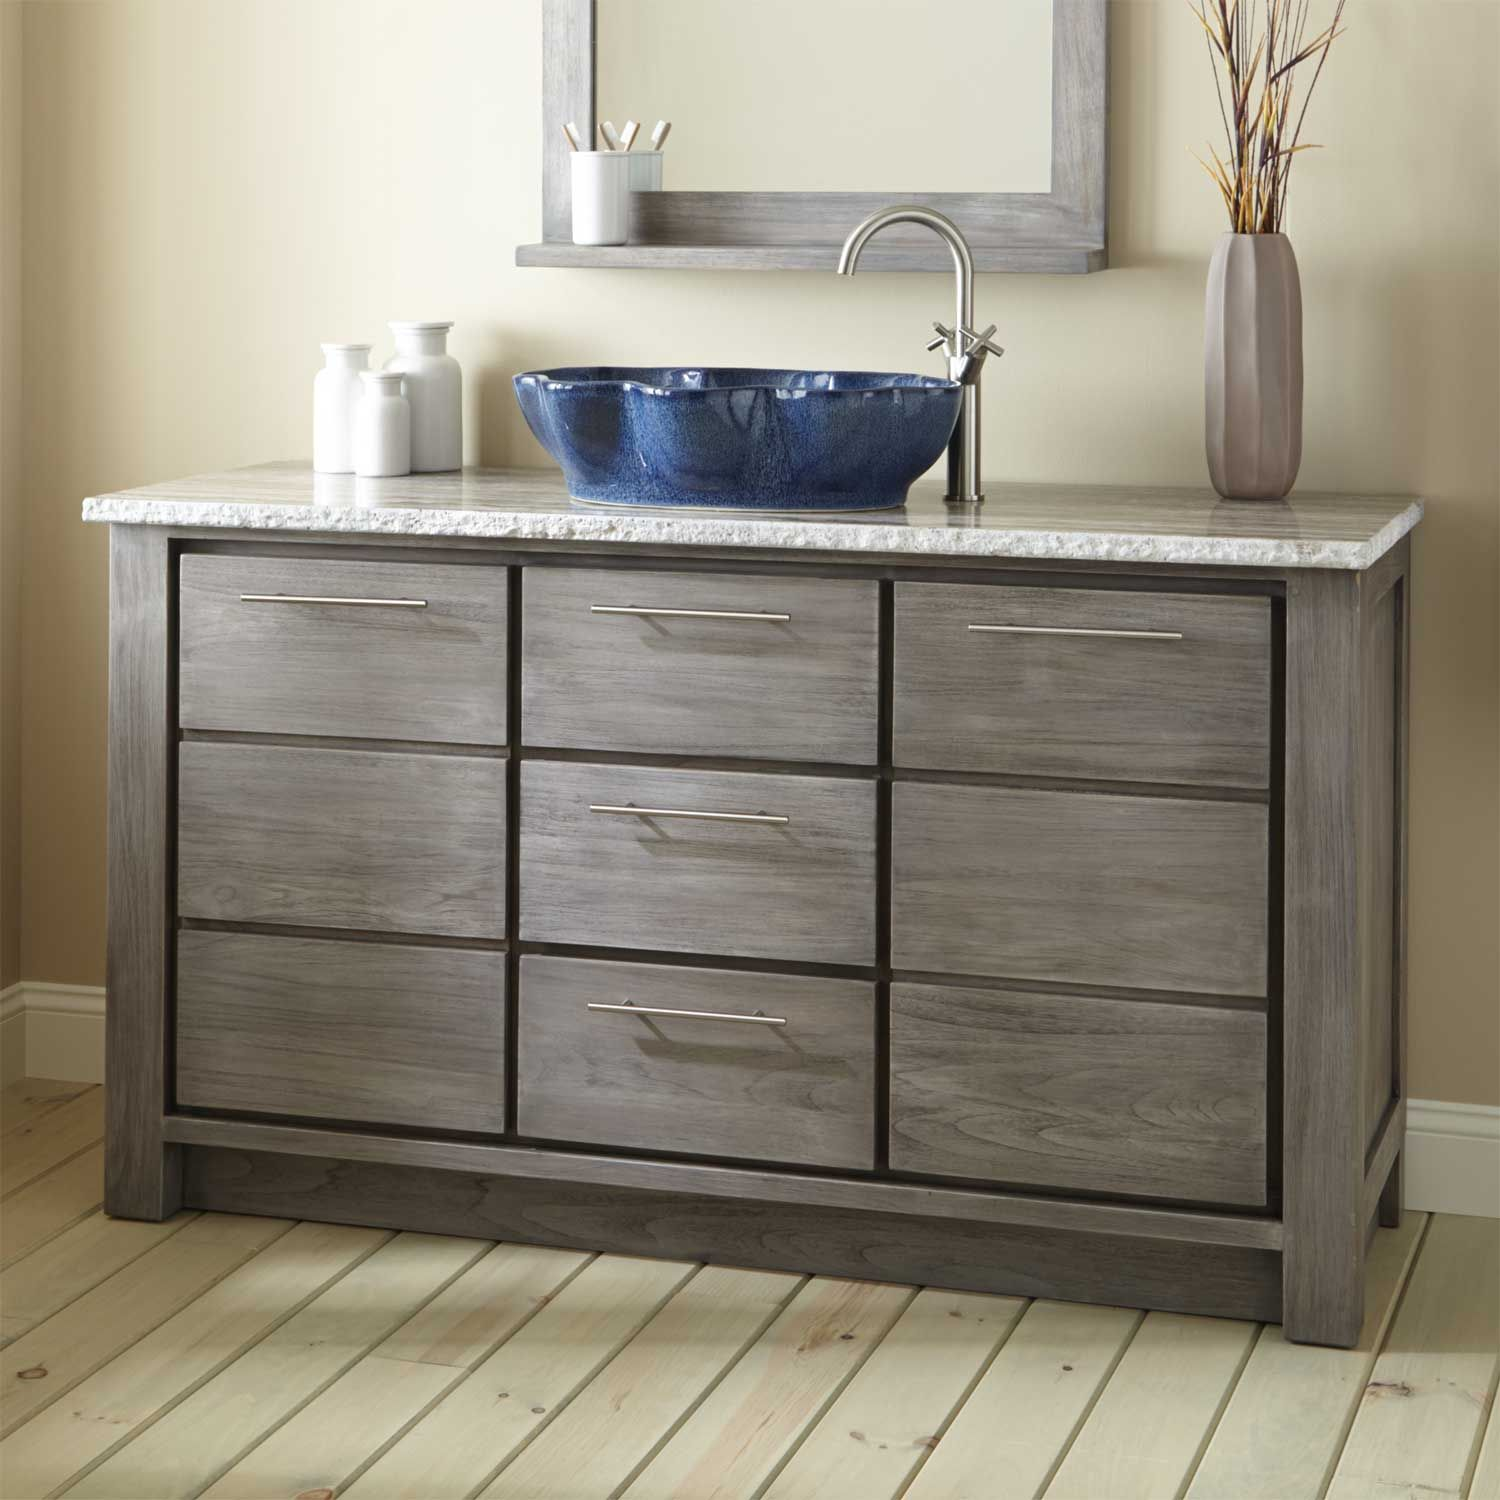 Blue Gemstone Bathroom Vessel Sink Vanity On Walnut Wood